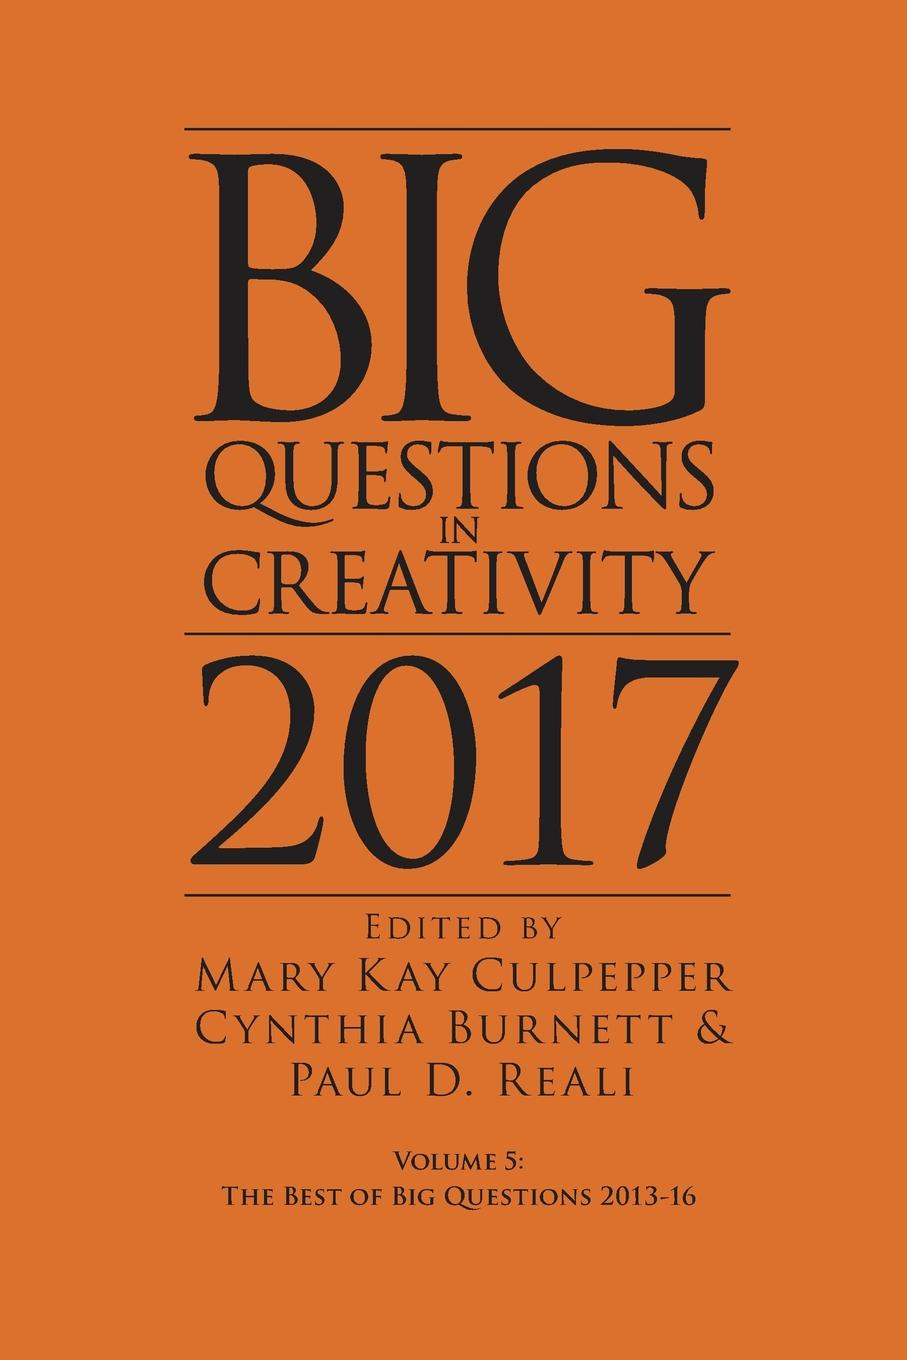 Big Questions in Creativity 2017. The Best of Big Questions 2013-16 creativity in life is directed by the heart